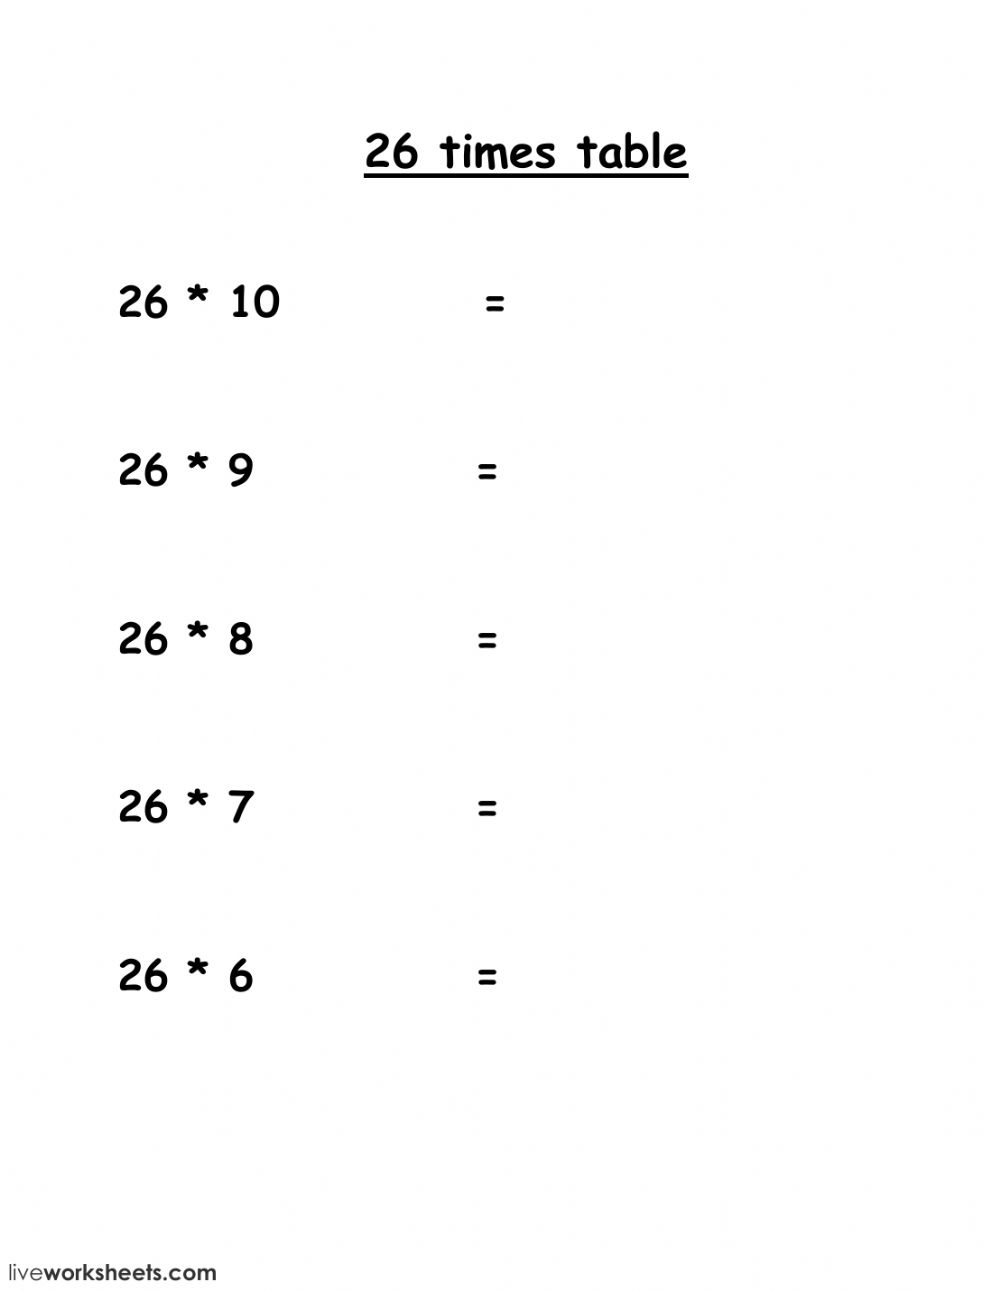 26 Multiplication Table Maths